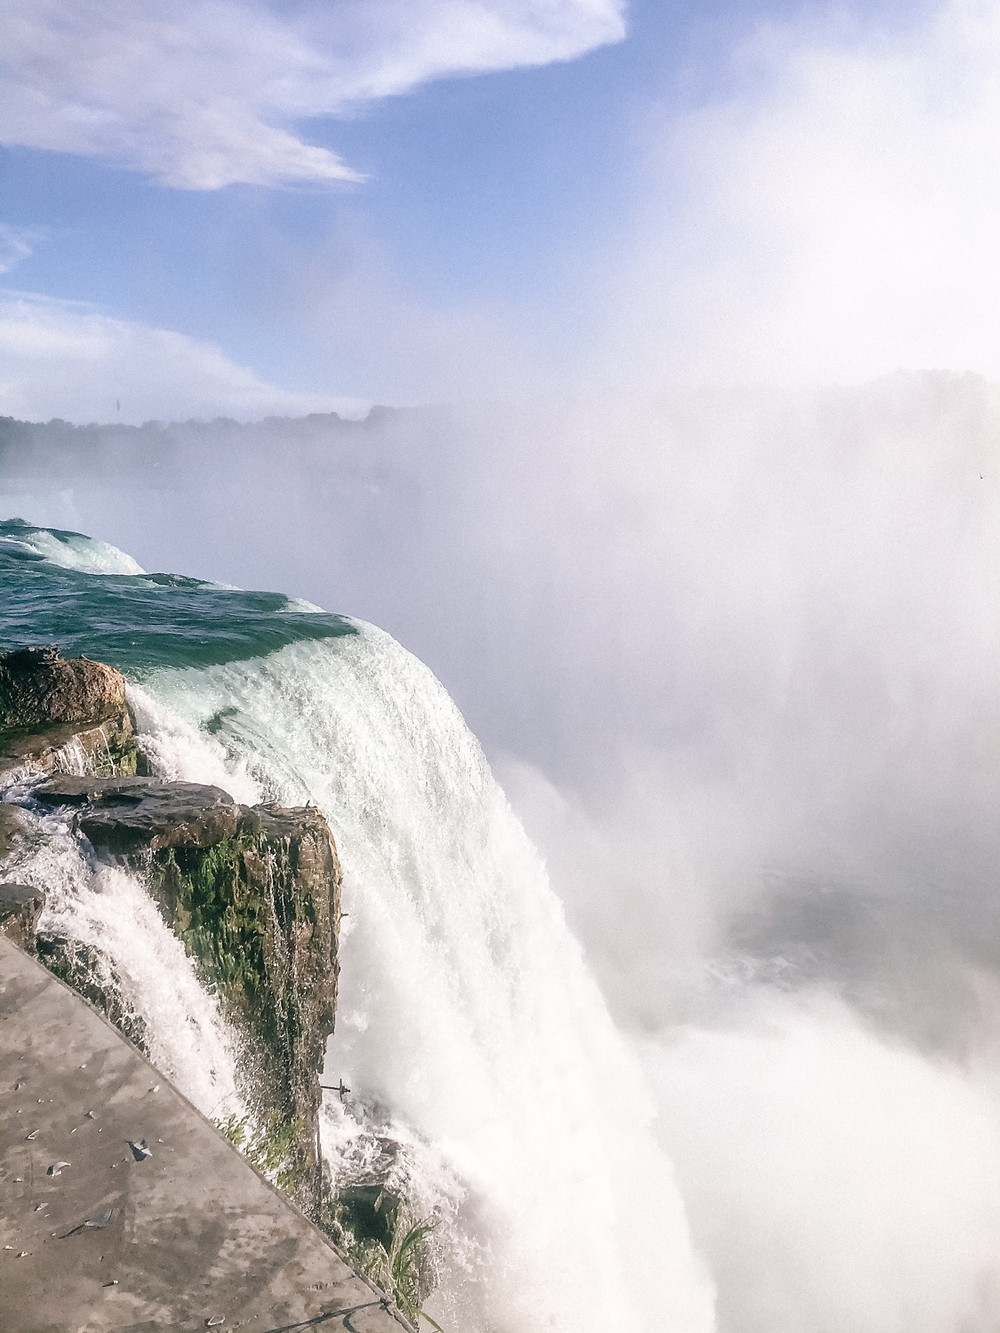 close-up view of the top of Niagara Falls from the American side